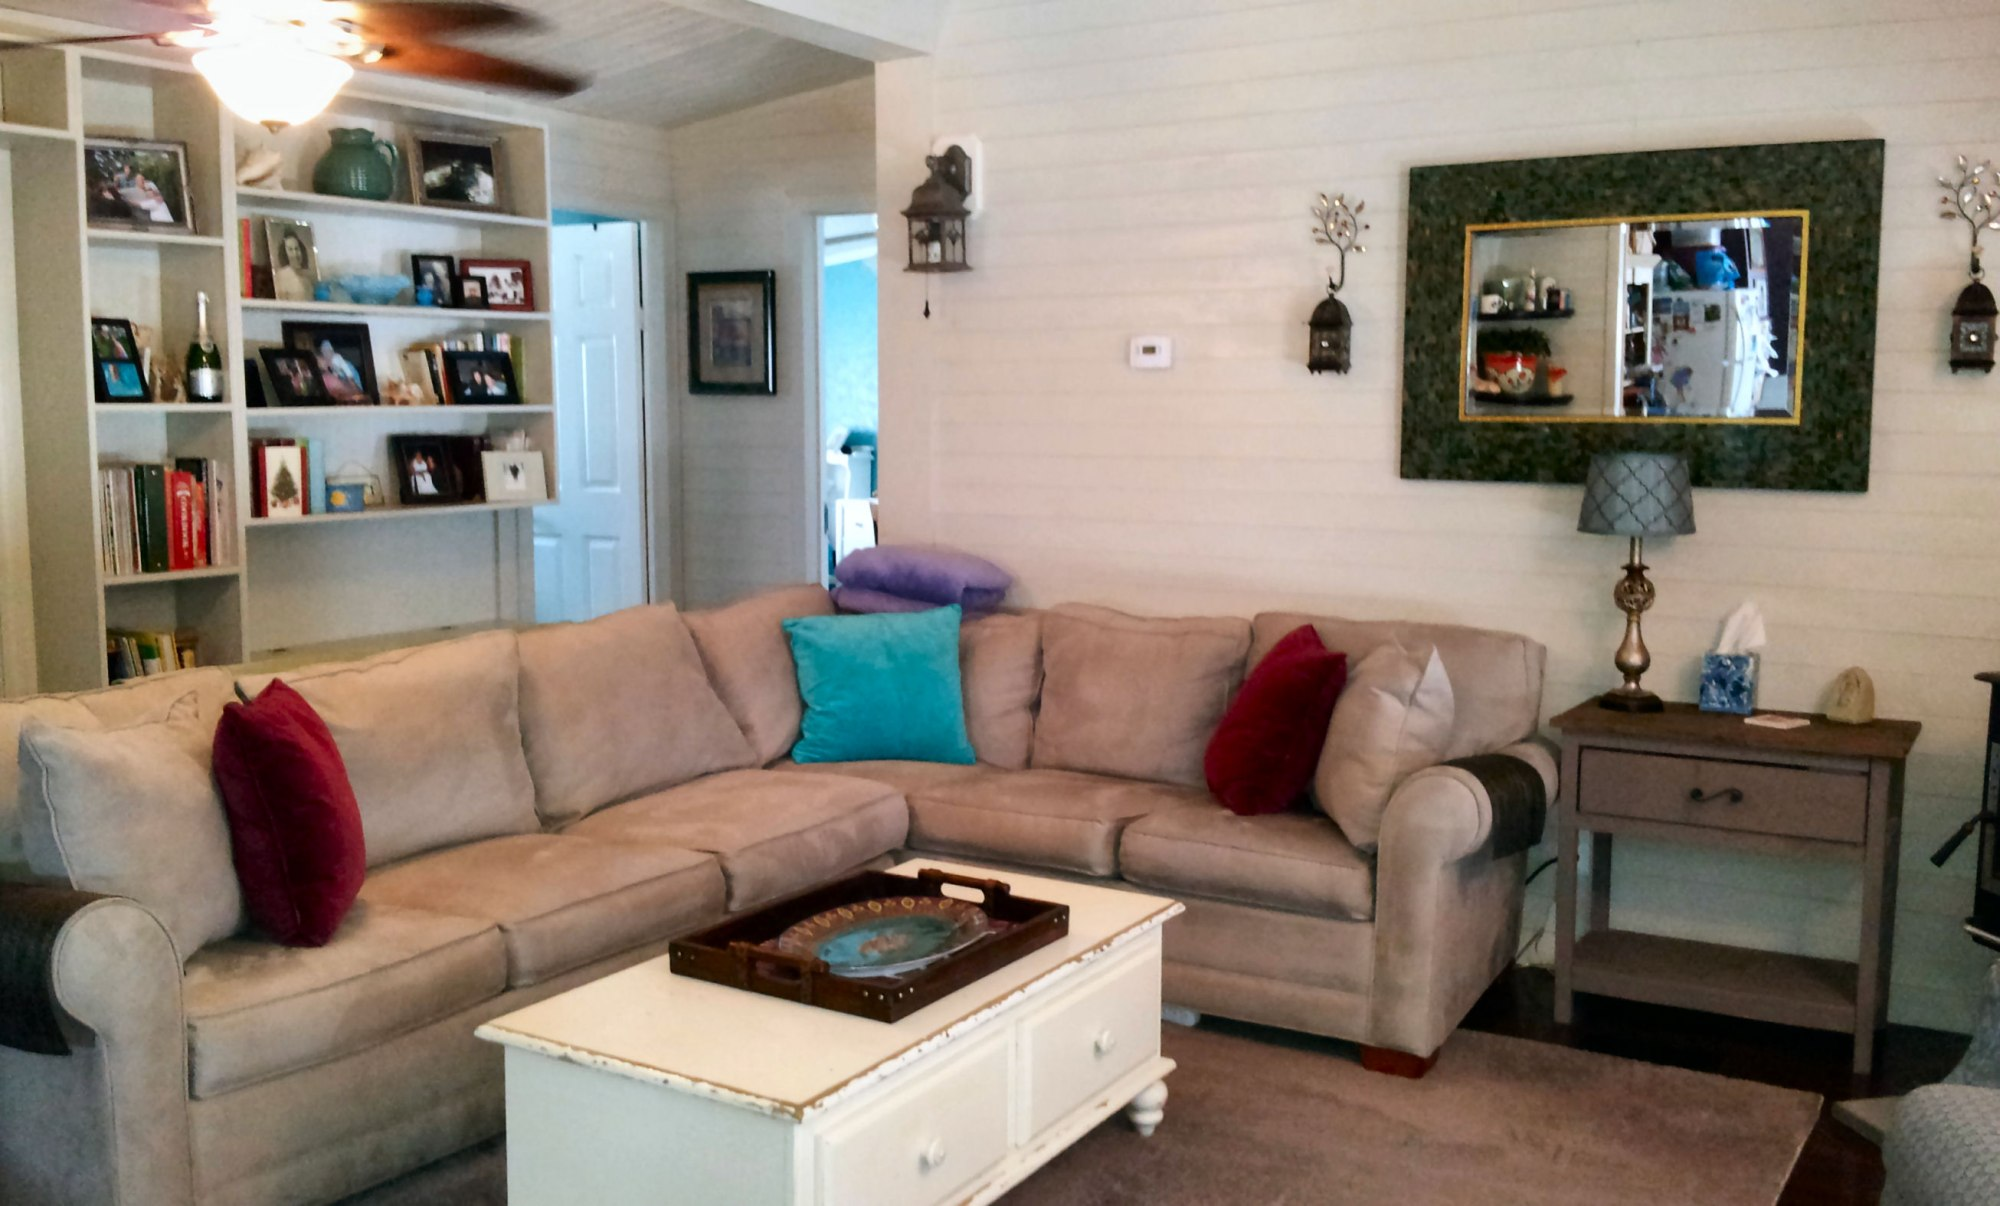 sofa-view Mobile Home Remodels Living Room on remodel mobile home walls, decorating with gray walls living room, remodel old mobile home interior, primitive home decor living room, remodel mobile home cabin, remodel mobile home bathroom,